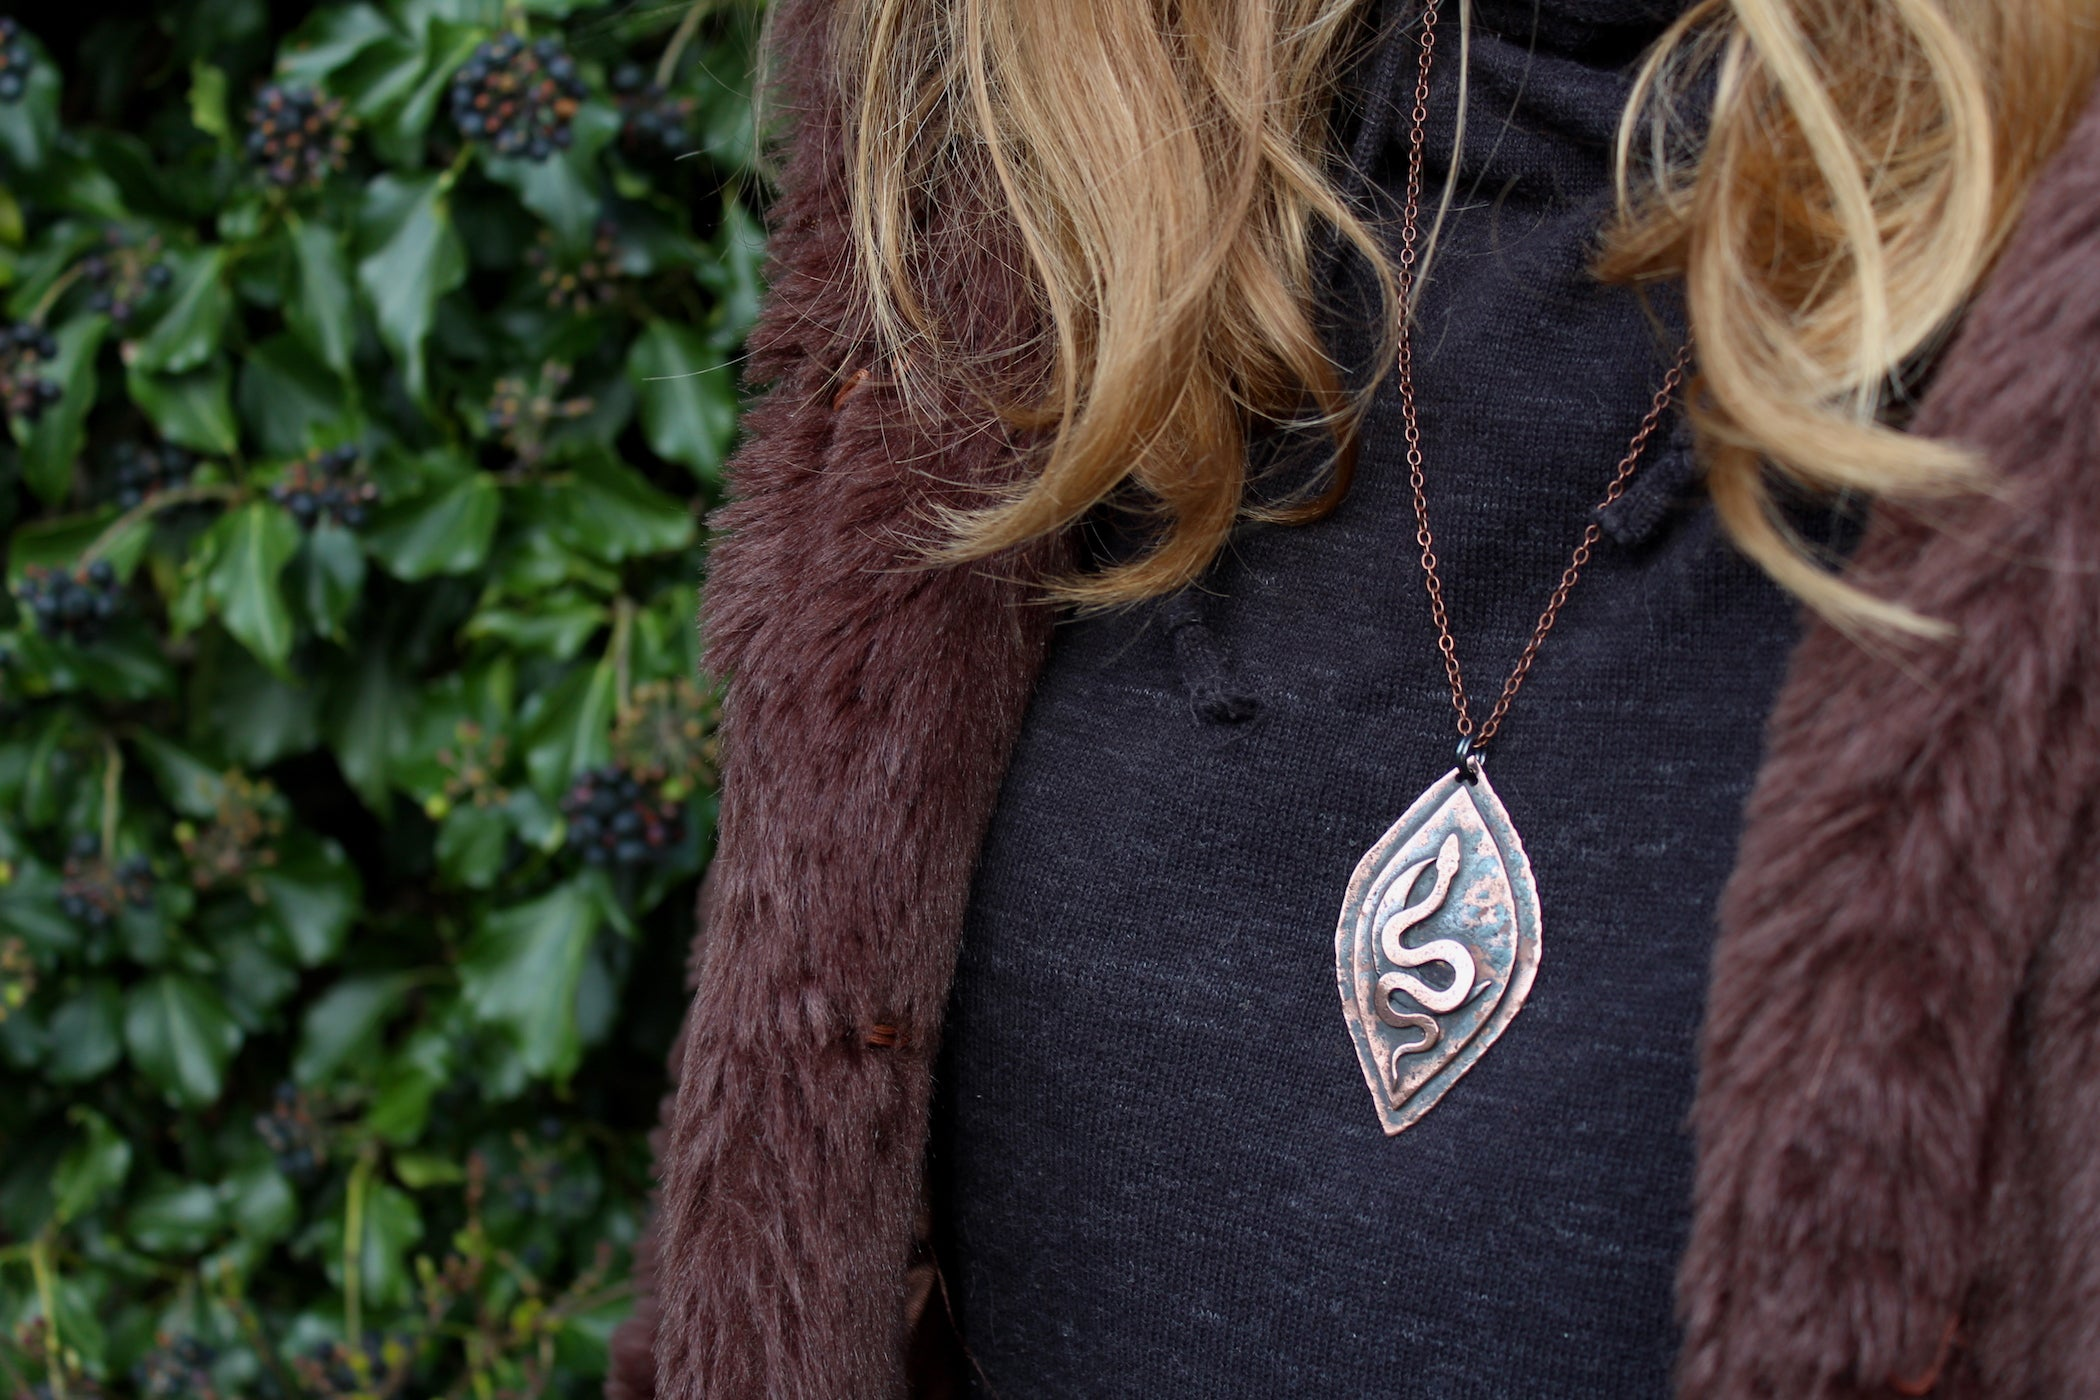 SERPENT YONI Handmade Copper Necklace